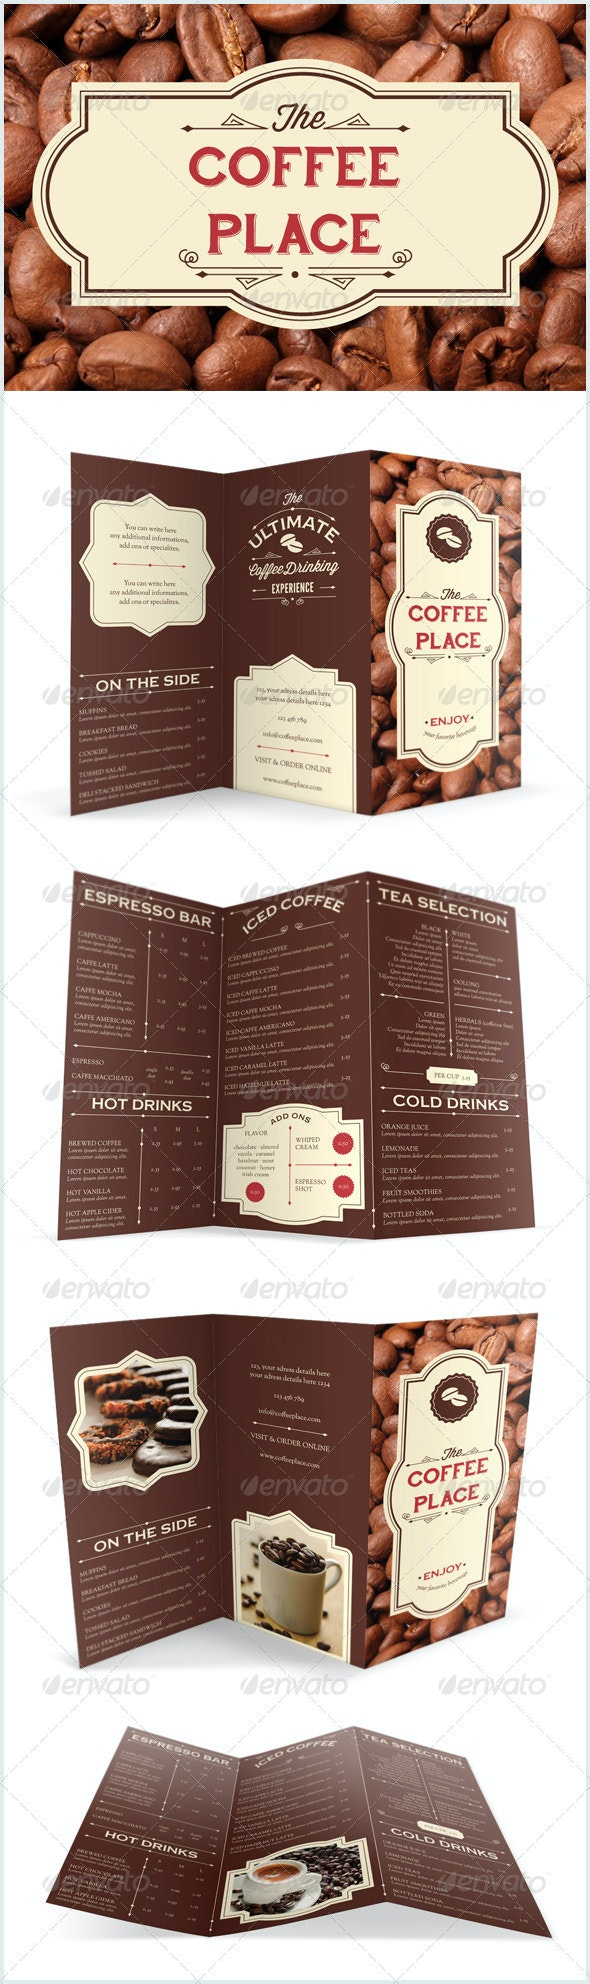 Coffee Place Brochure - Menu - Food Menus Print Templates